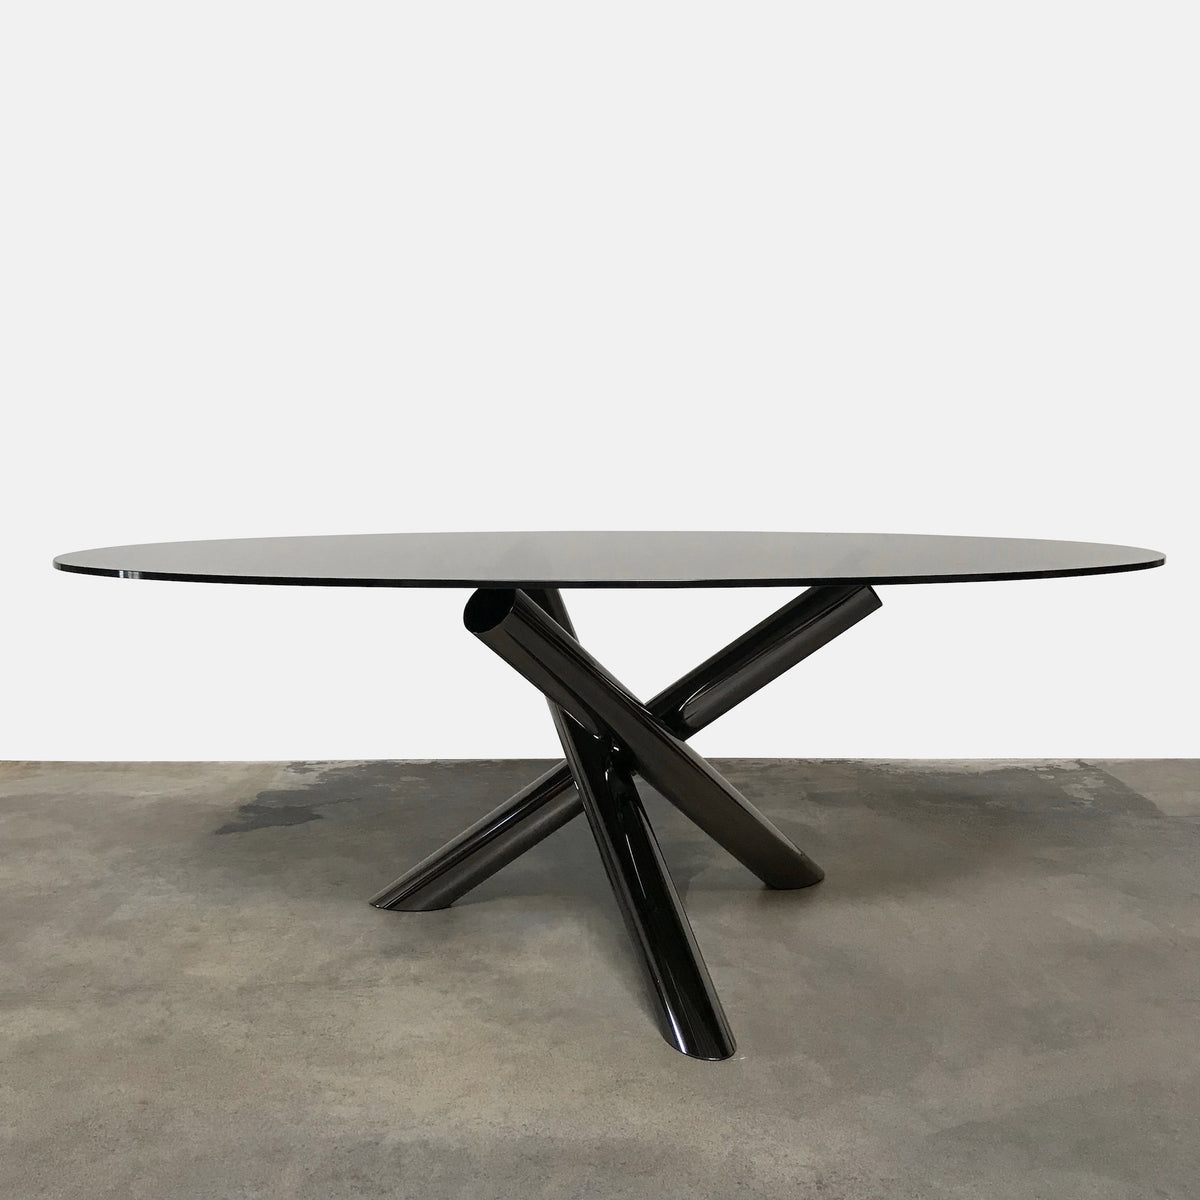 Minotti 'Van Dyck' Smoked Grey Glass Dining Table by Rodolfo Dordoni